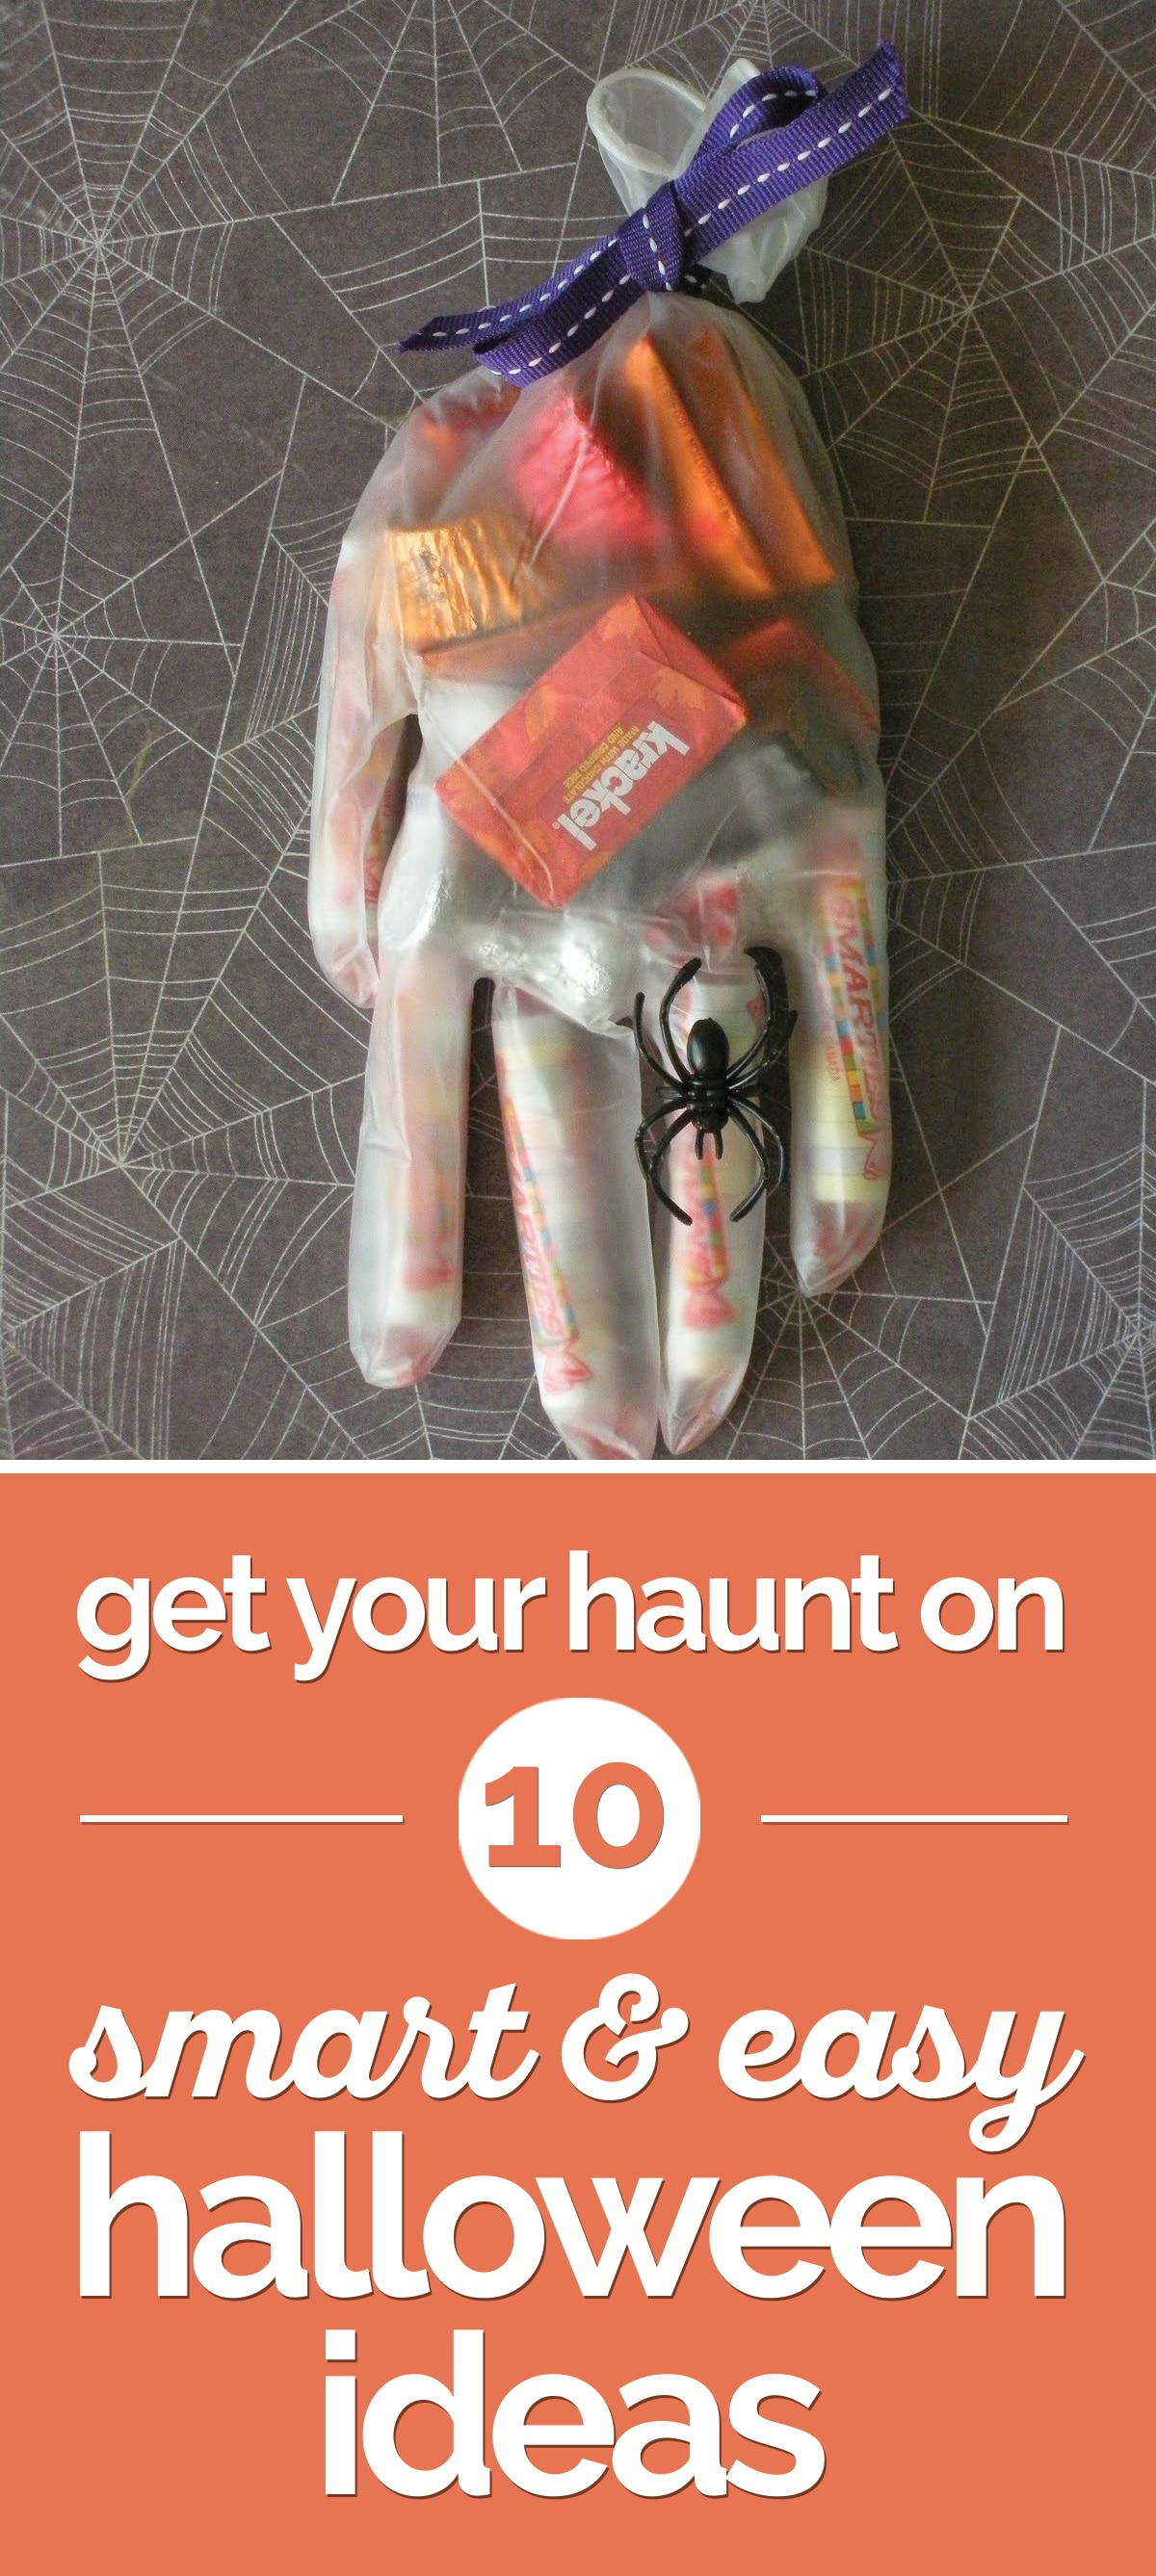 Get Your Haunt On: 10 Smart & Easy Halloween Ideas | the good stuff